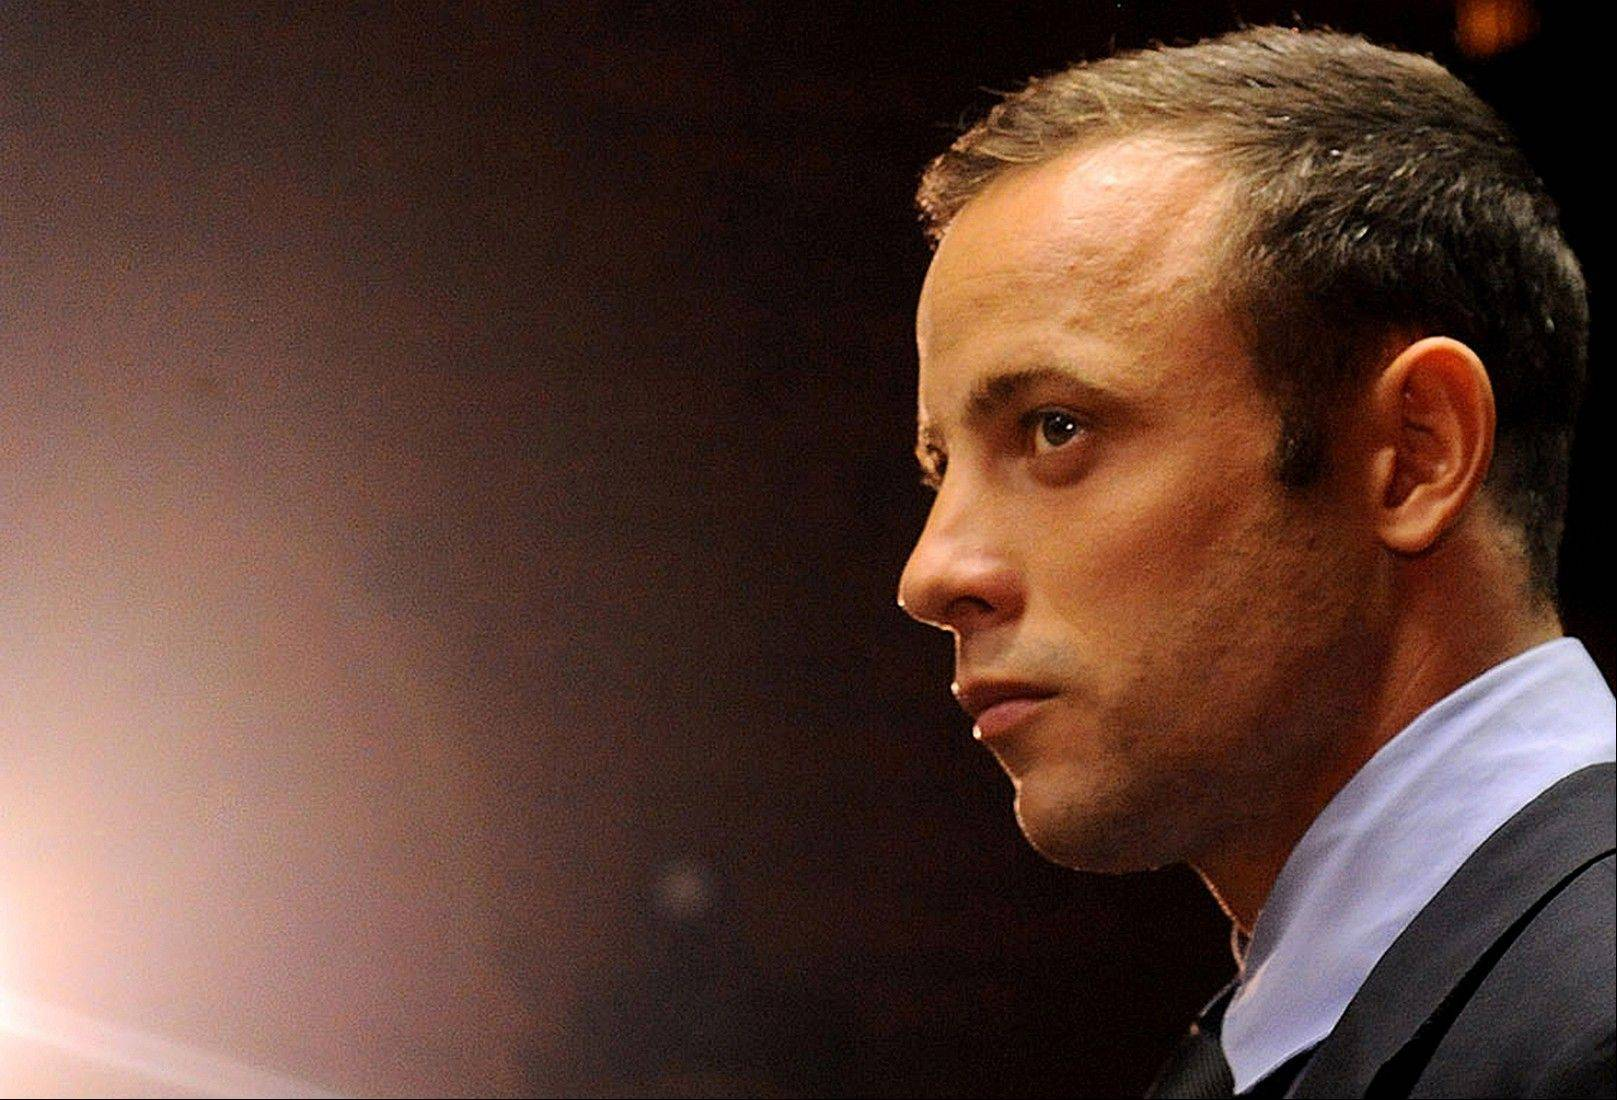 Oscar Pistorius gets bail as murder trial looms